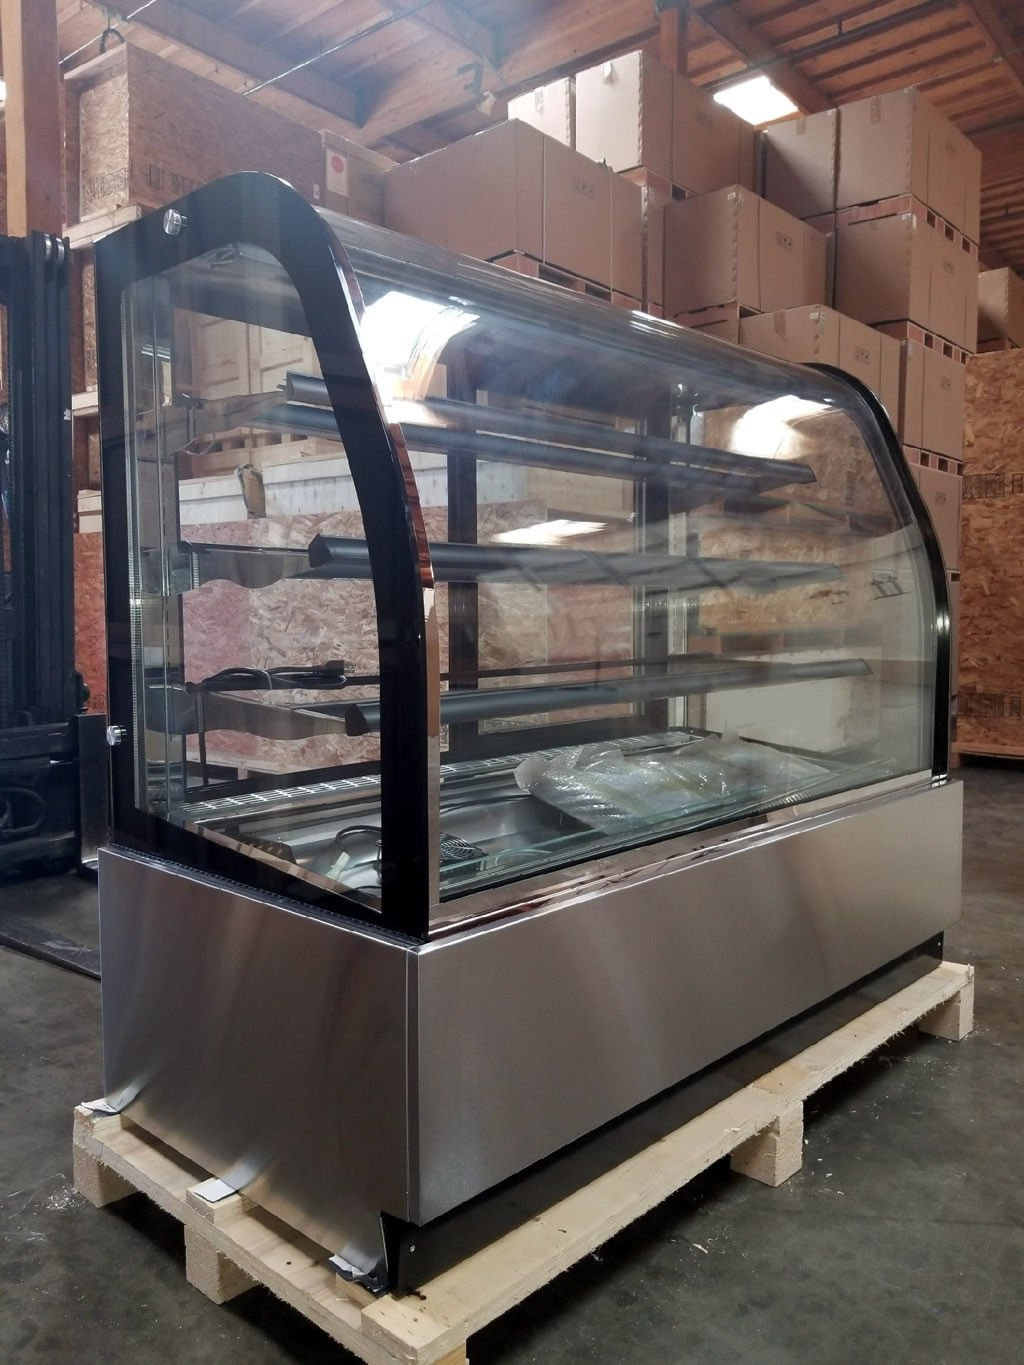 "59"" Curved Glass Stainless Steel Deli Cake Display Refrigerator Full Size"